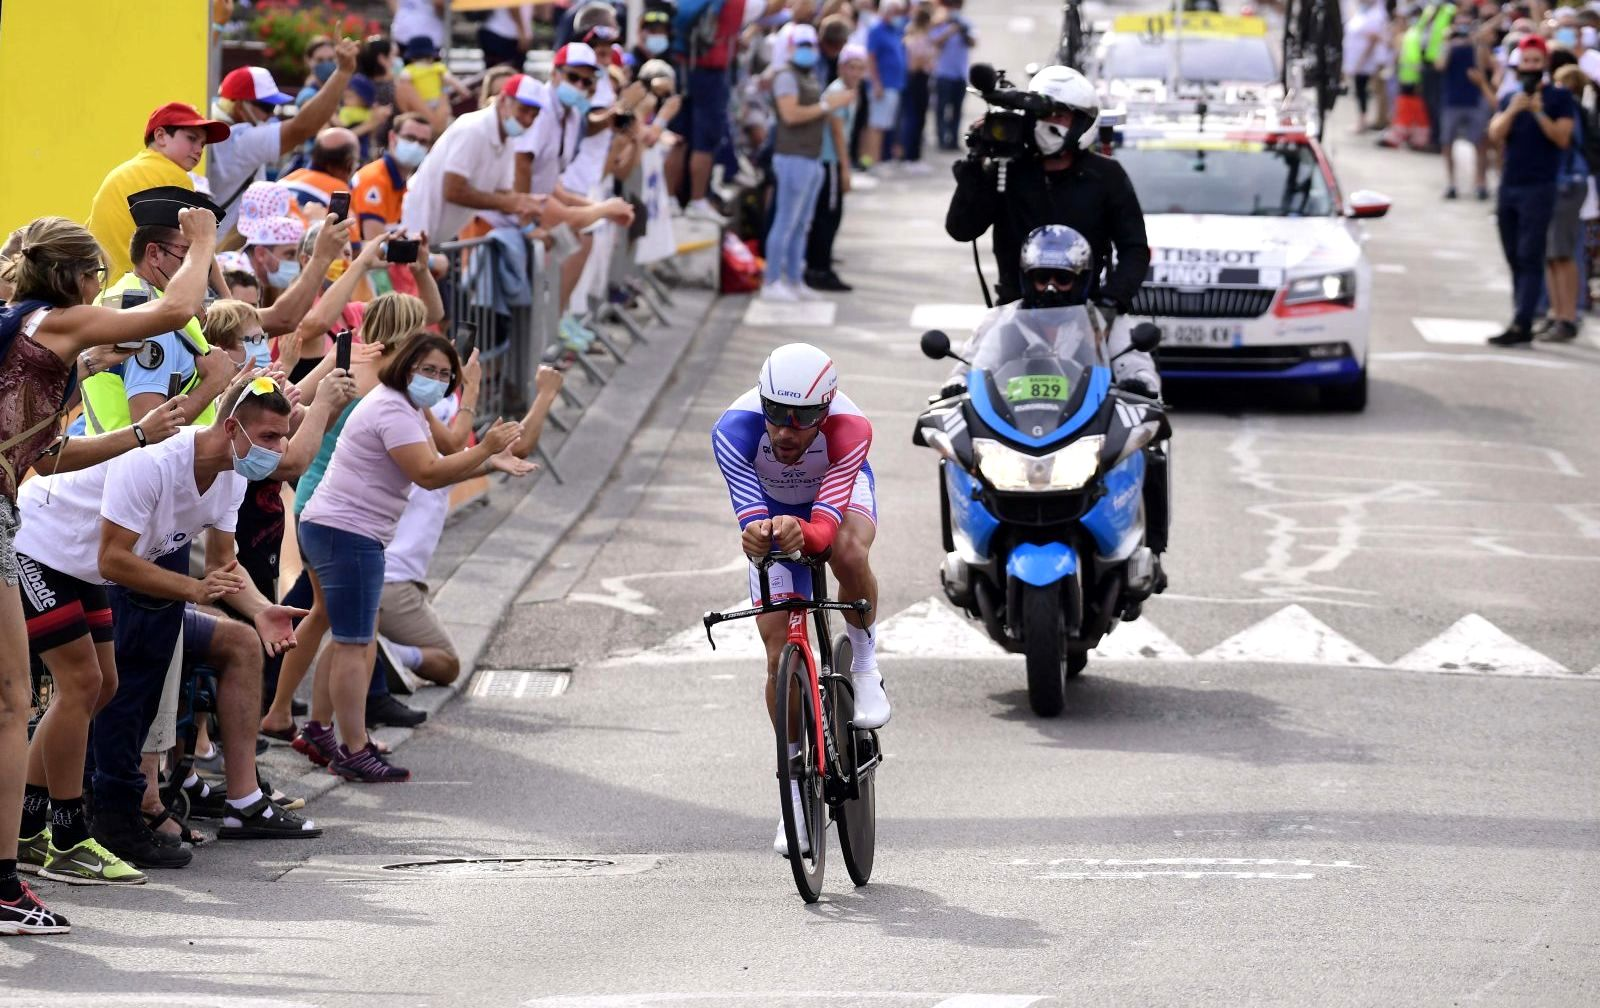 Quelques cyclistes du Tour de France - 12 photos